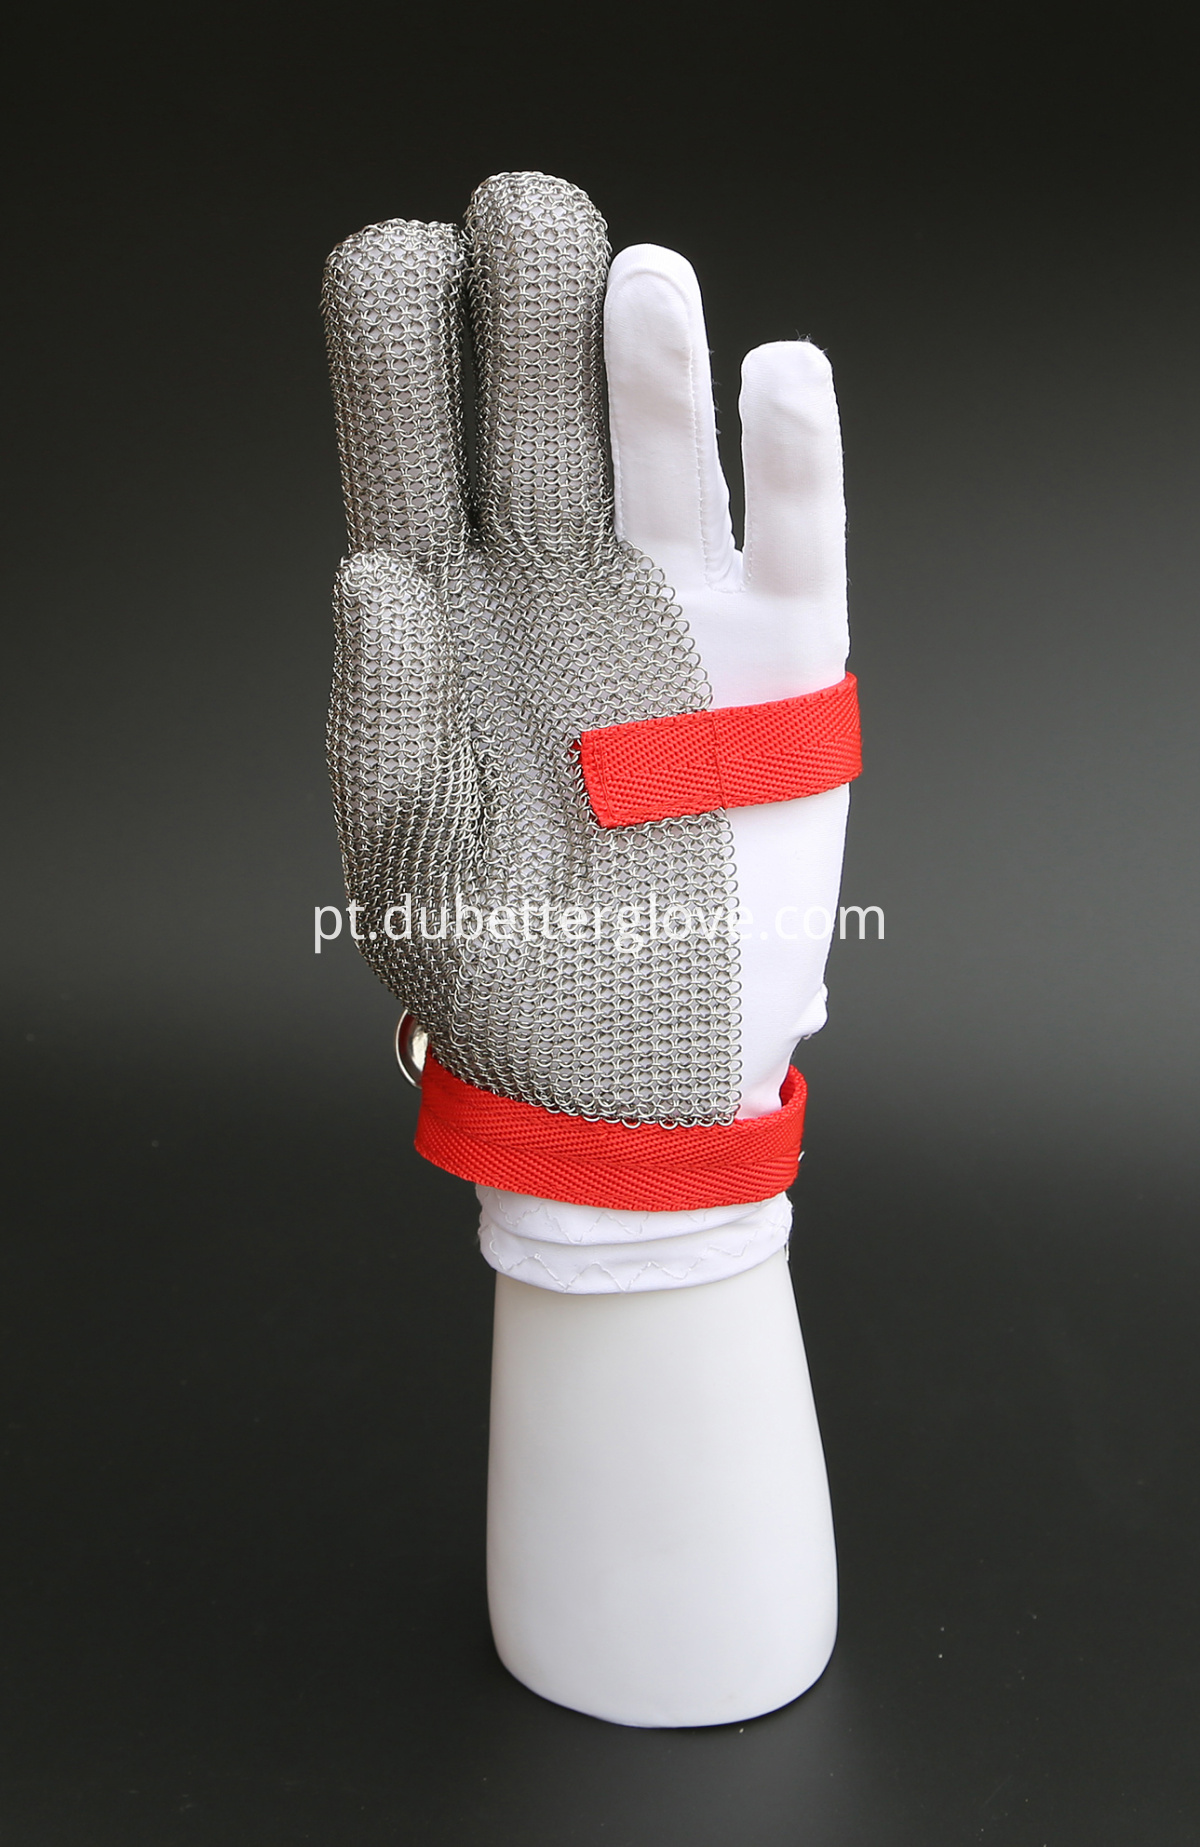 Dubetter steel mesh gloves